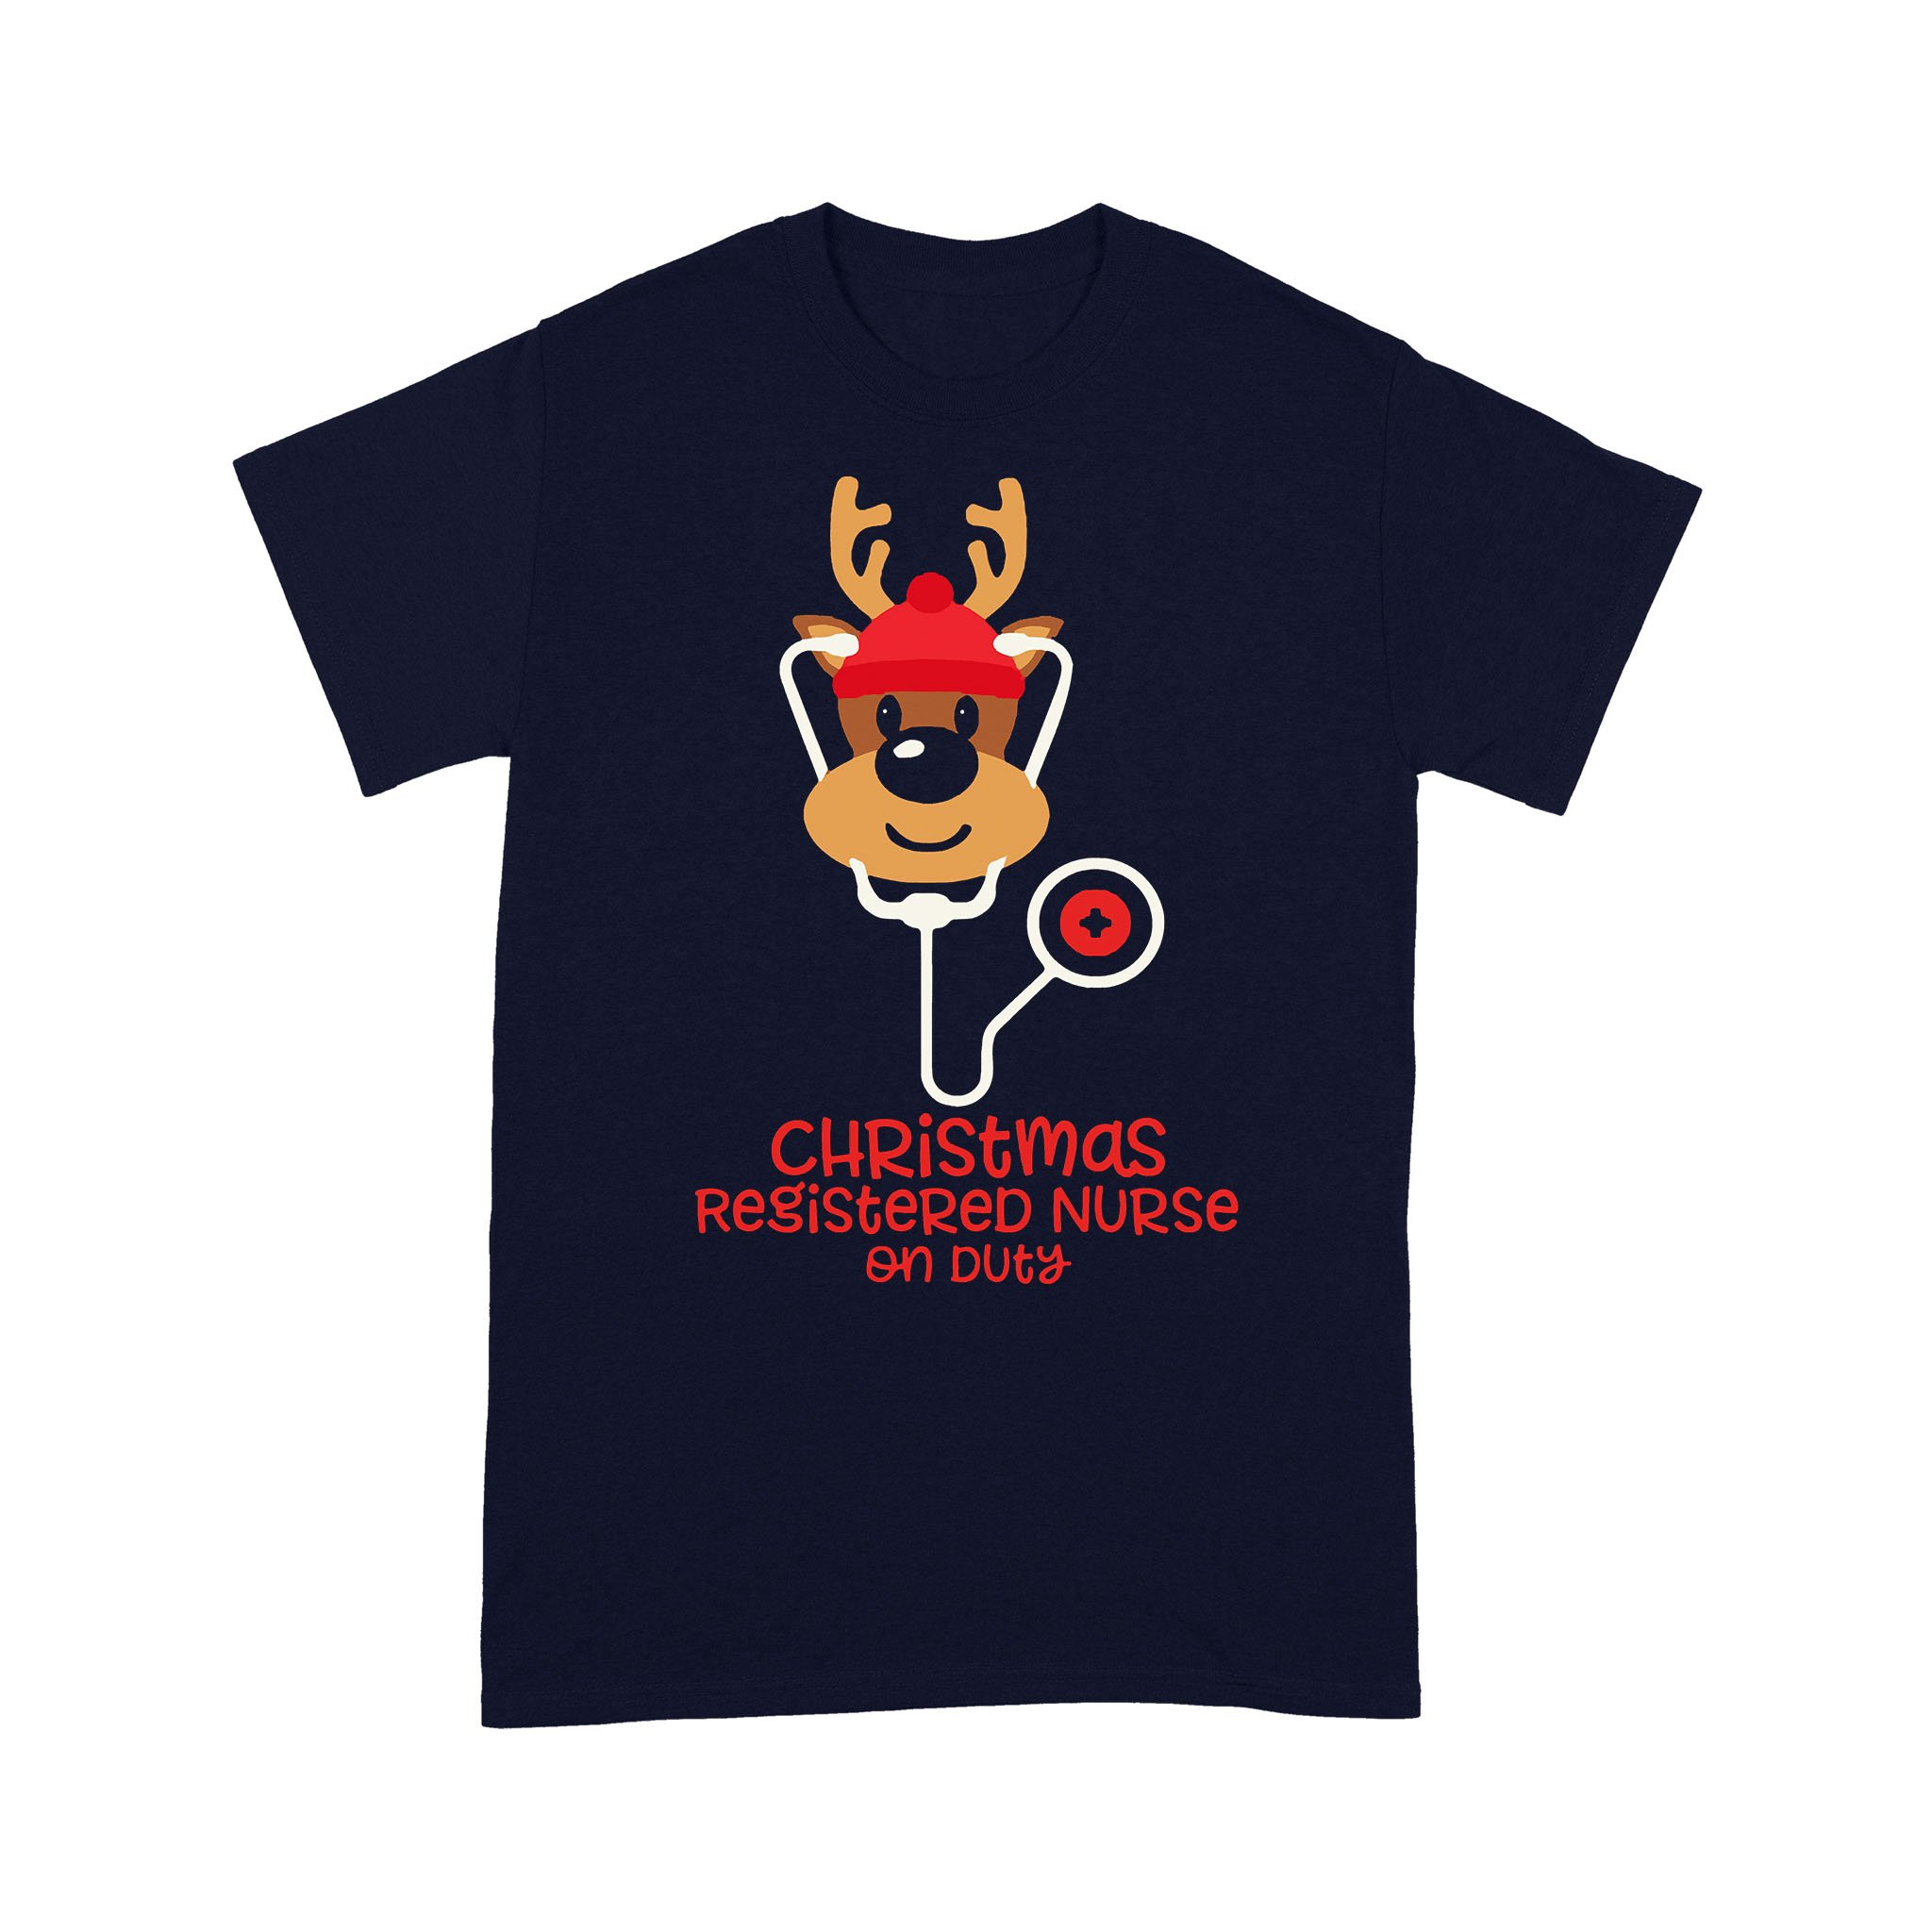 Christmas Registered Nurse Reindeer Nurse On Duty T-shirt